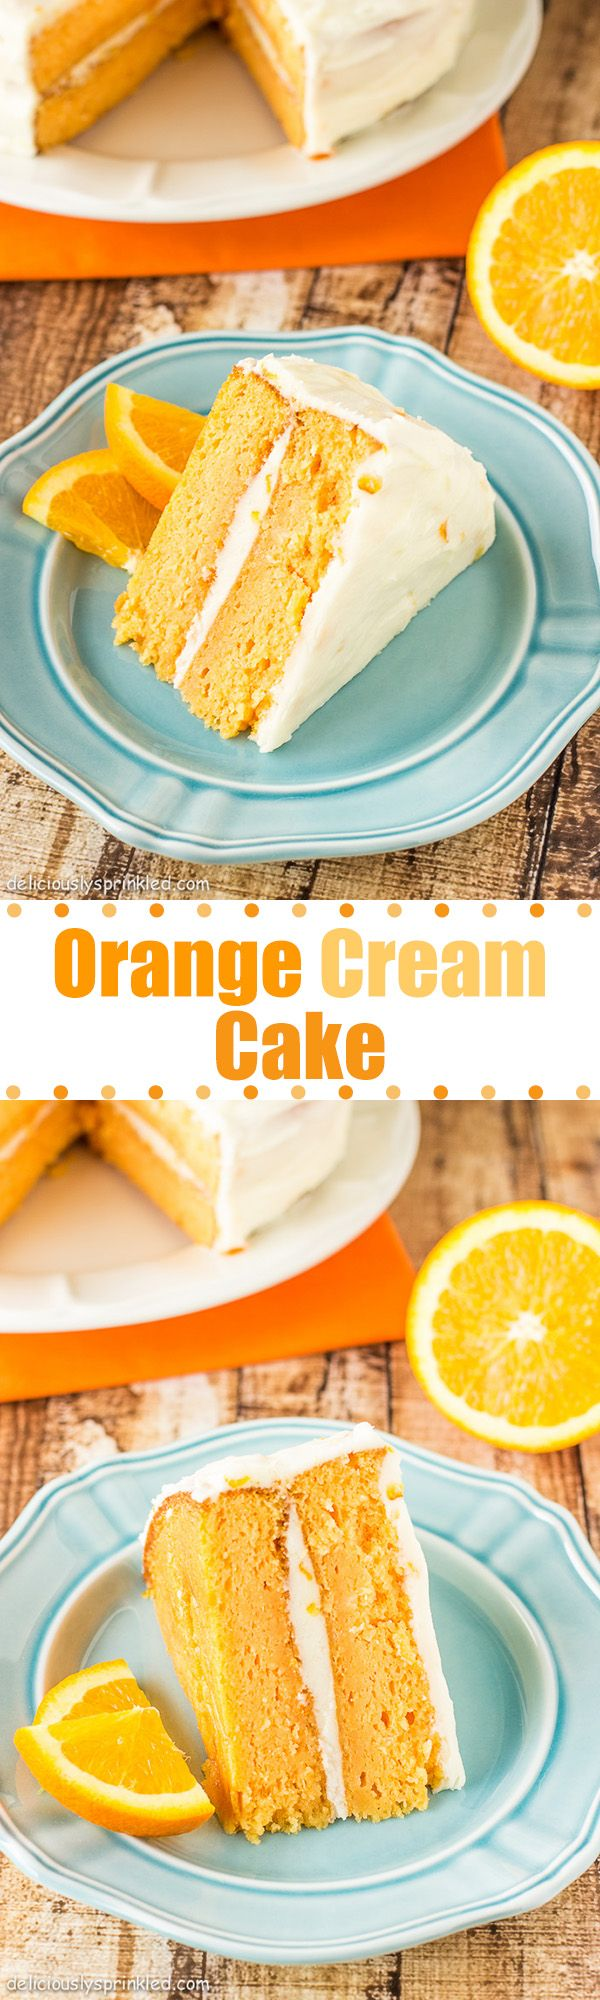 Orange Cream Cake with Orange Buttercream Frosting!